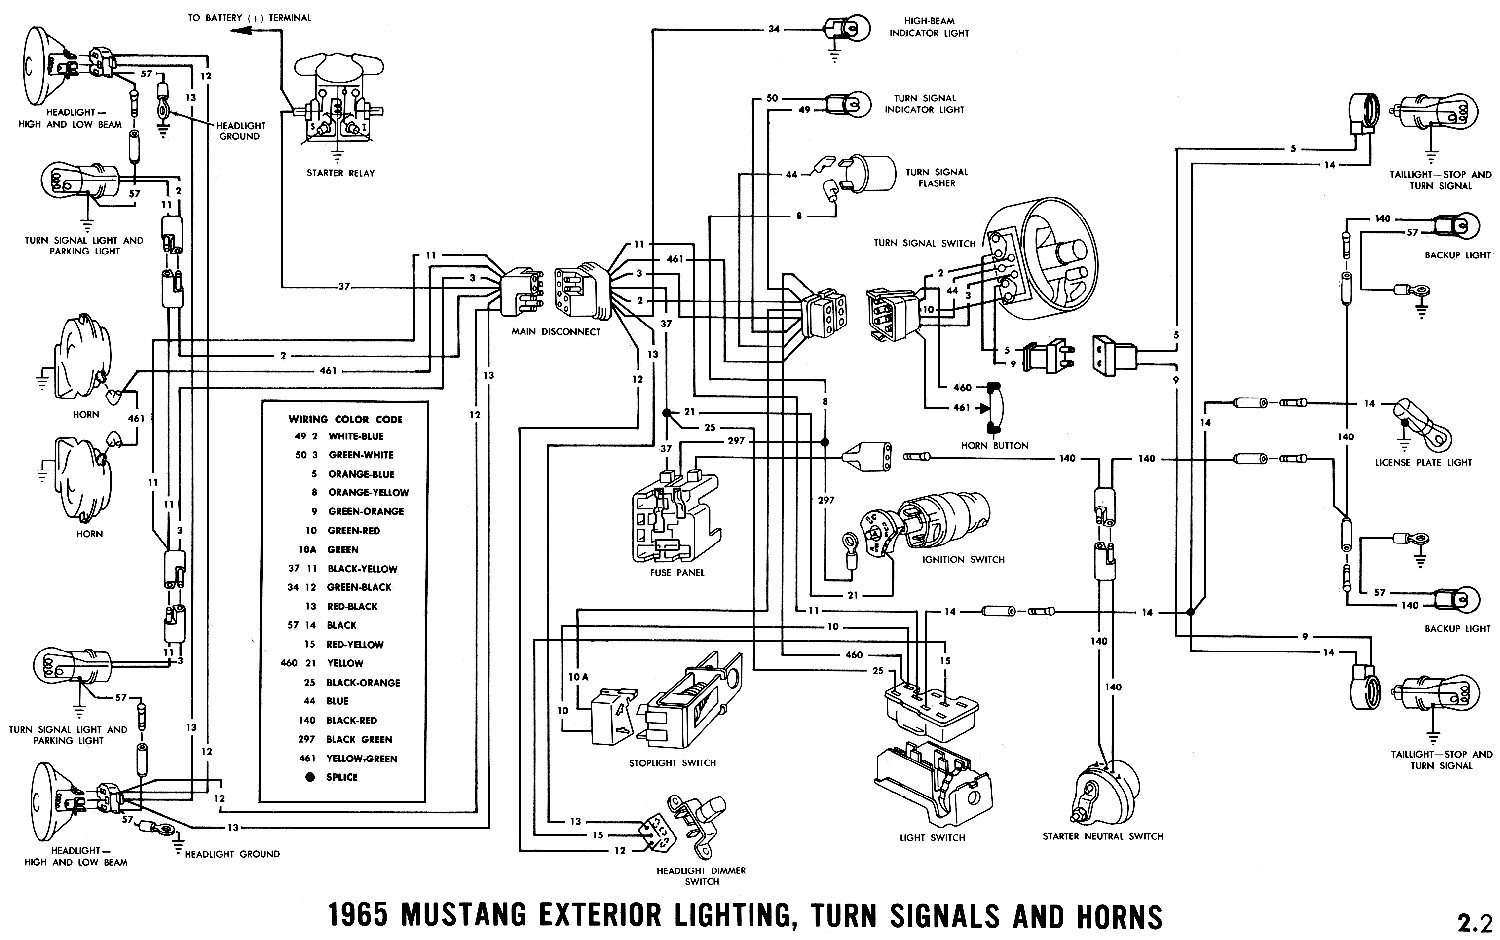 1966 Mustang Alternator Wiring Diagram Vacuum Tube Audio Amplifier Circuit Tradeoficcom 1976 2wire Diagrams Schematics Rh Myomedia Co